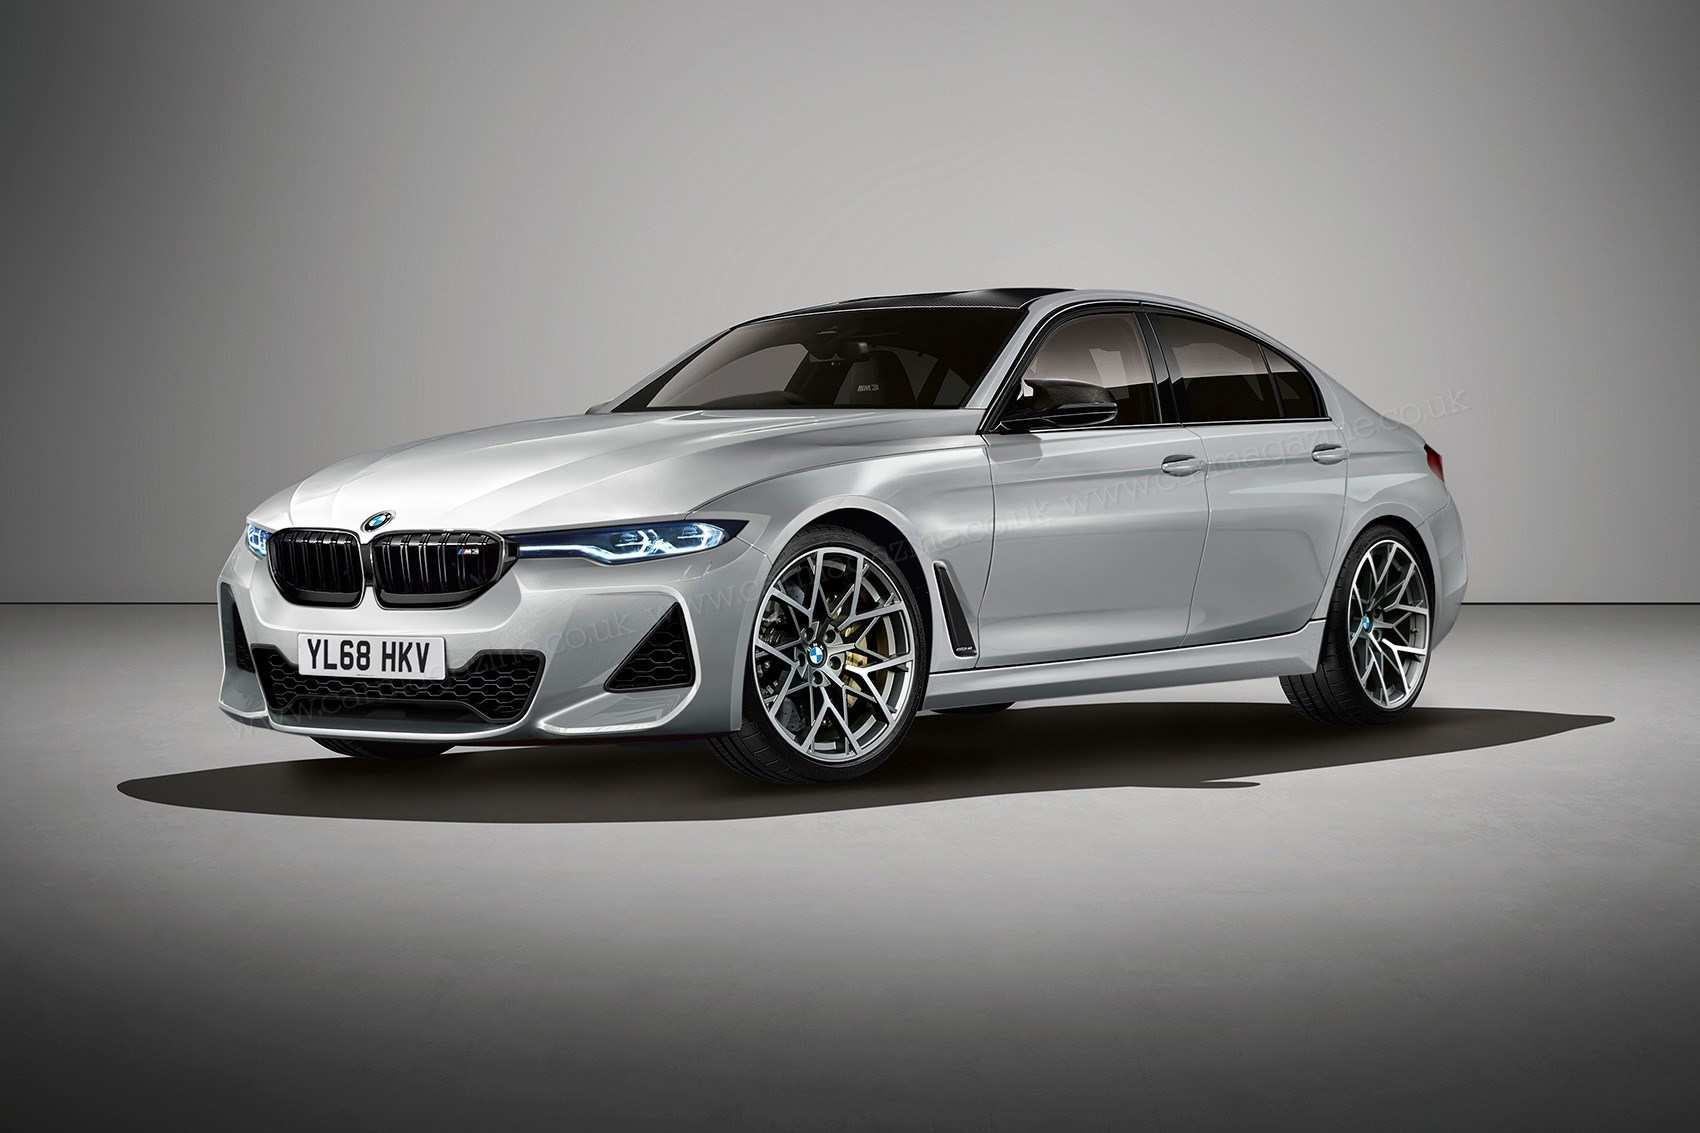 78 The Best 2020 BMW M4 All Wheel Drive Wallpaper